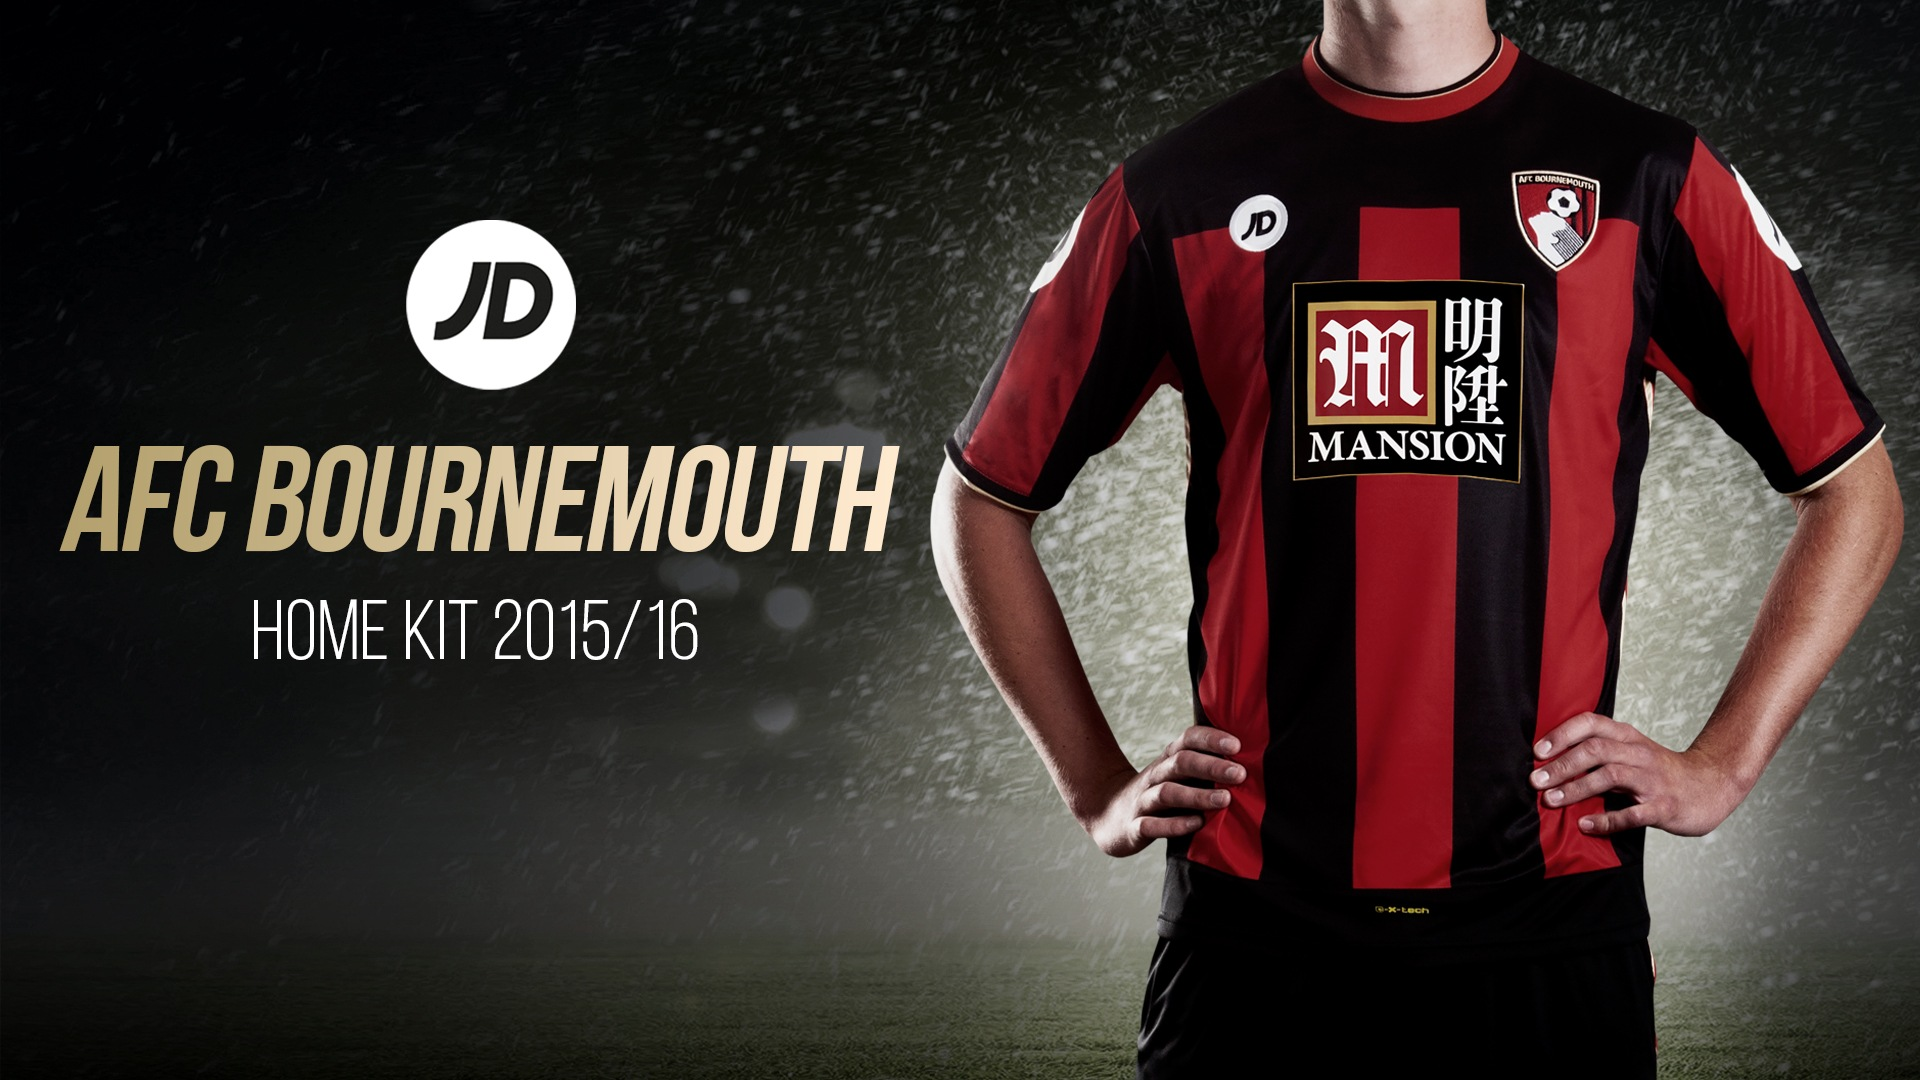 Afc Bournemouth Wallpaper Hd Full Hd Pictures